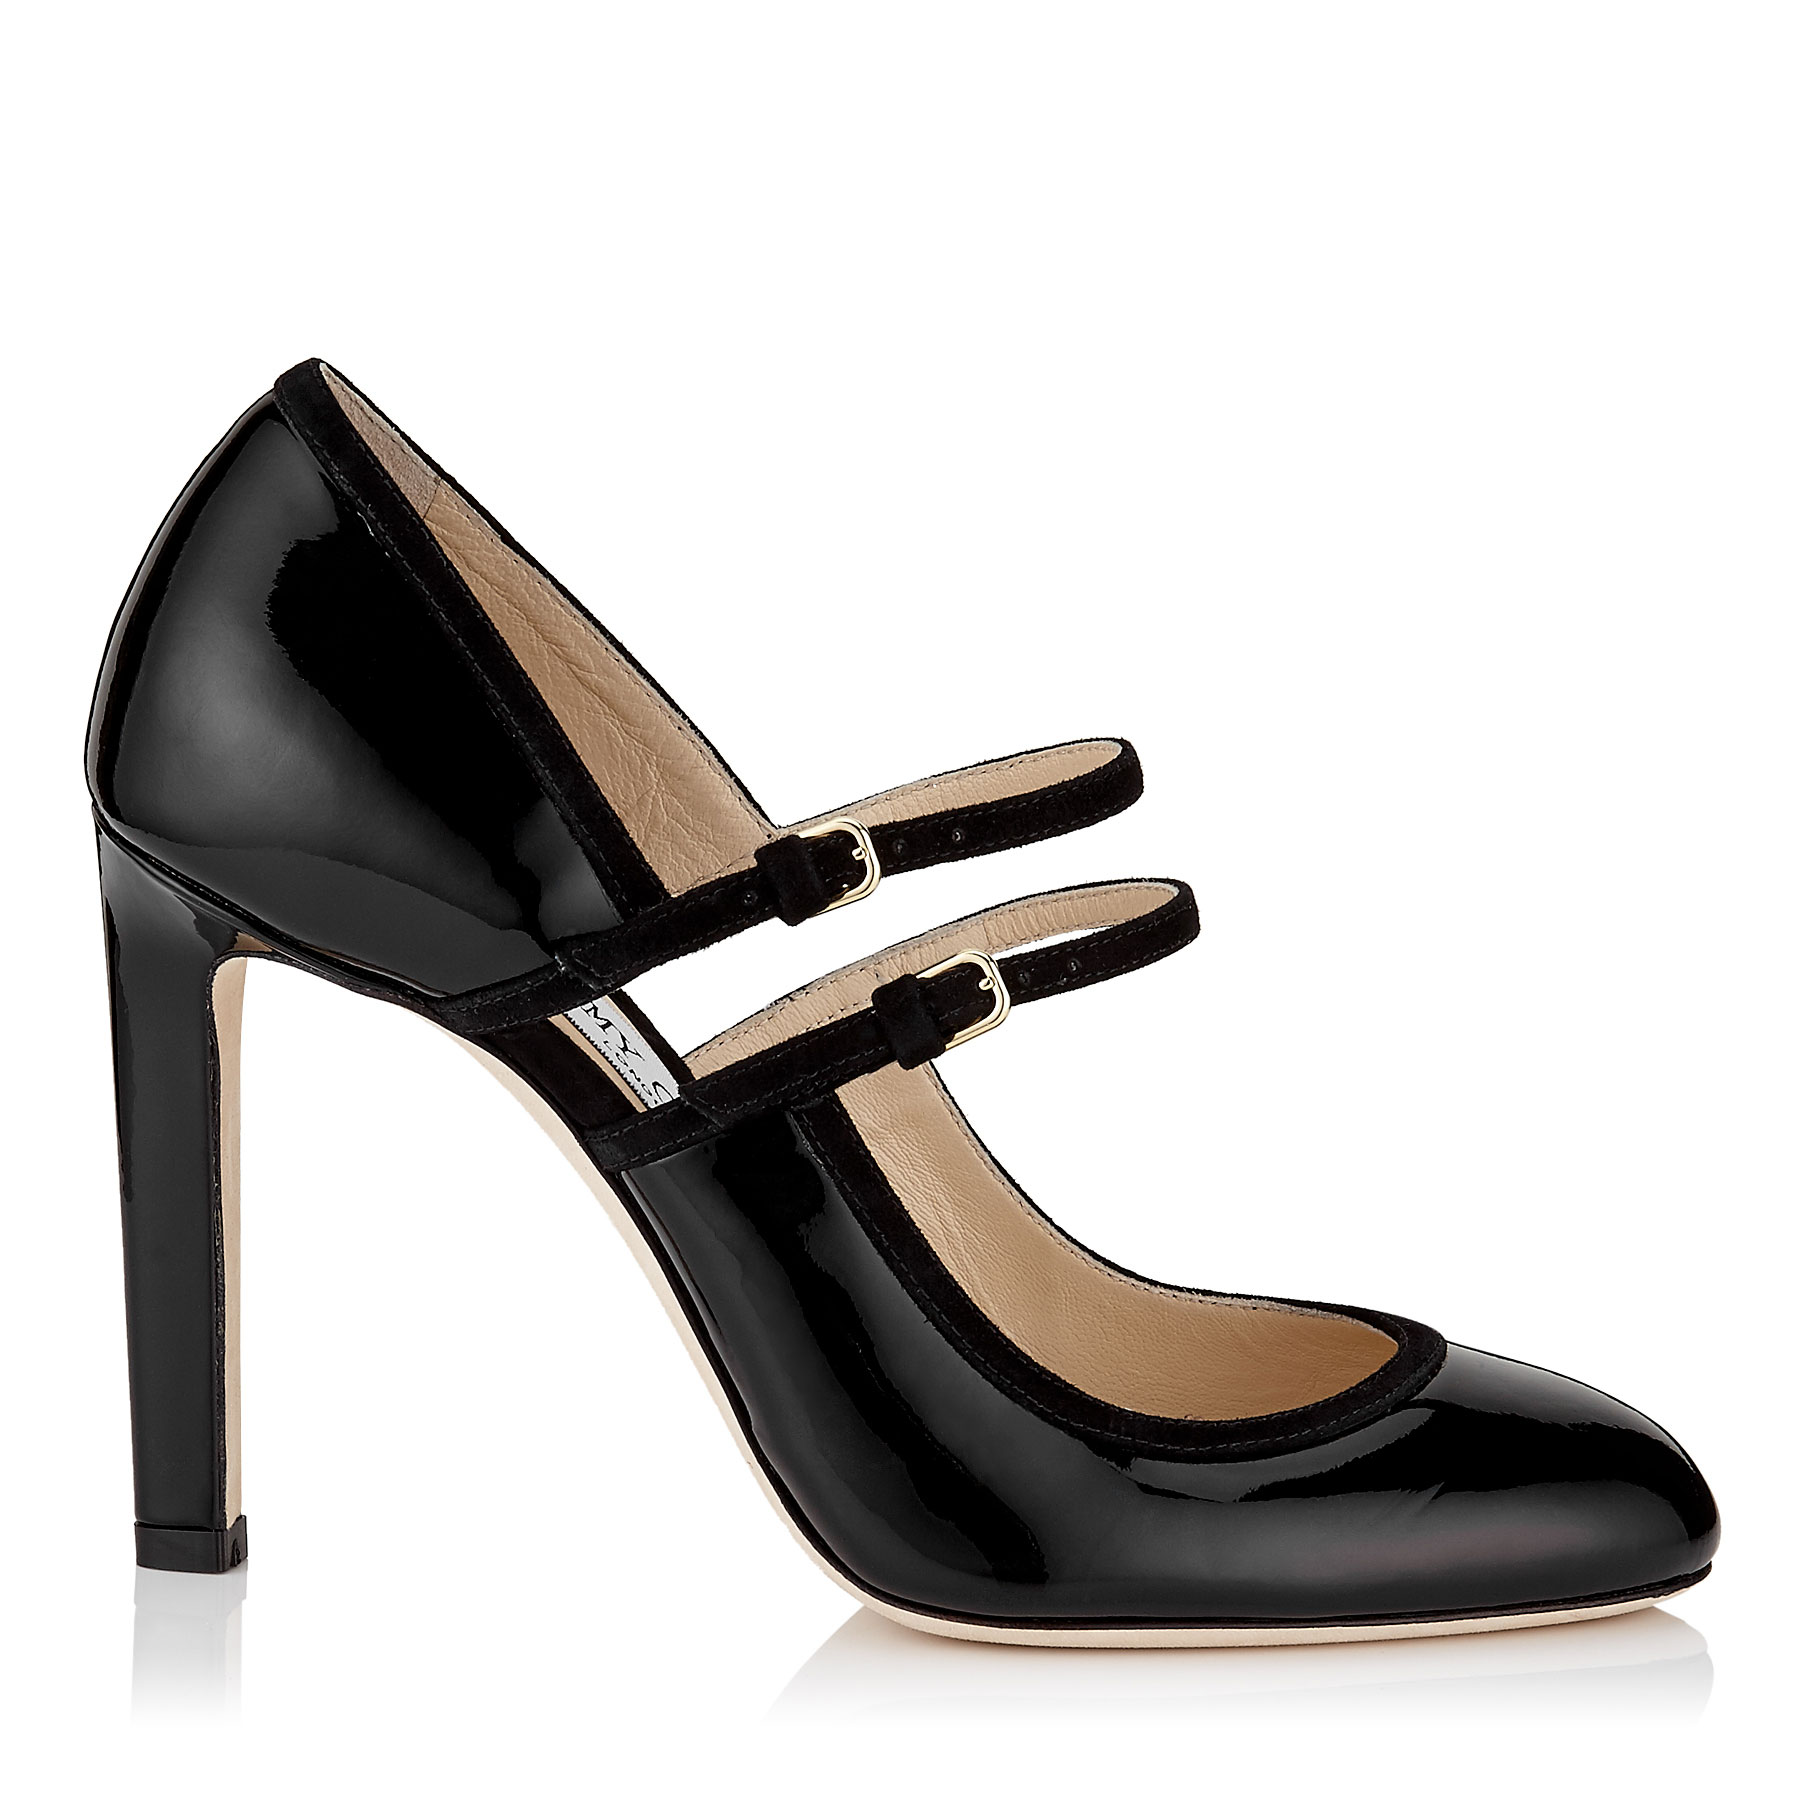 MICHA 100 Black Patent and Suede Round Toe Pumps